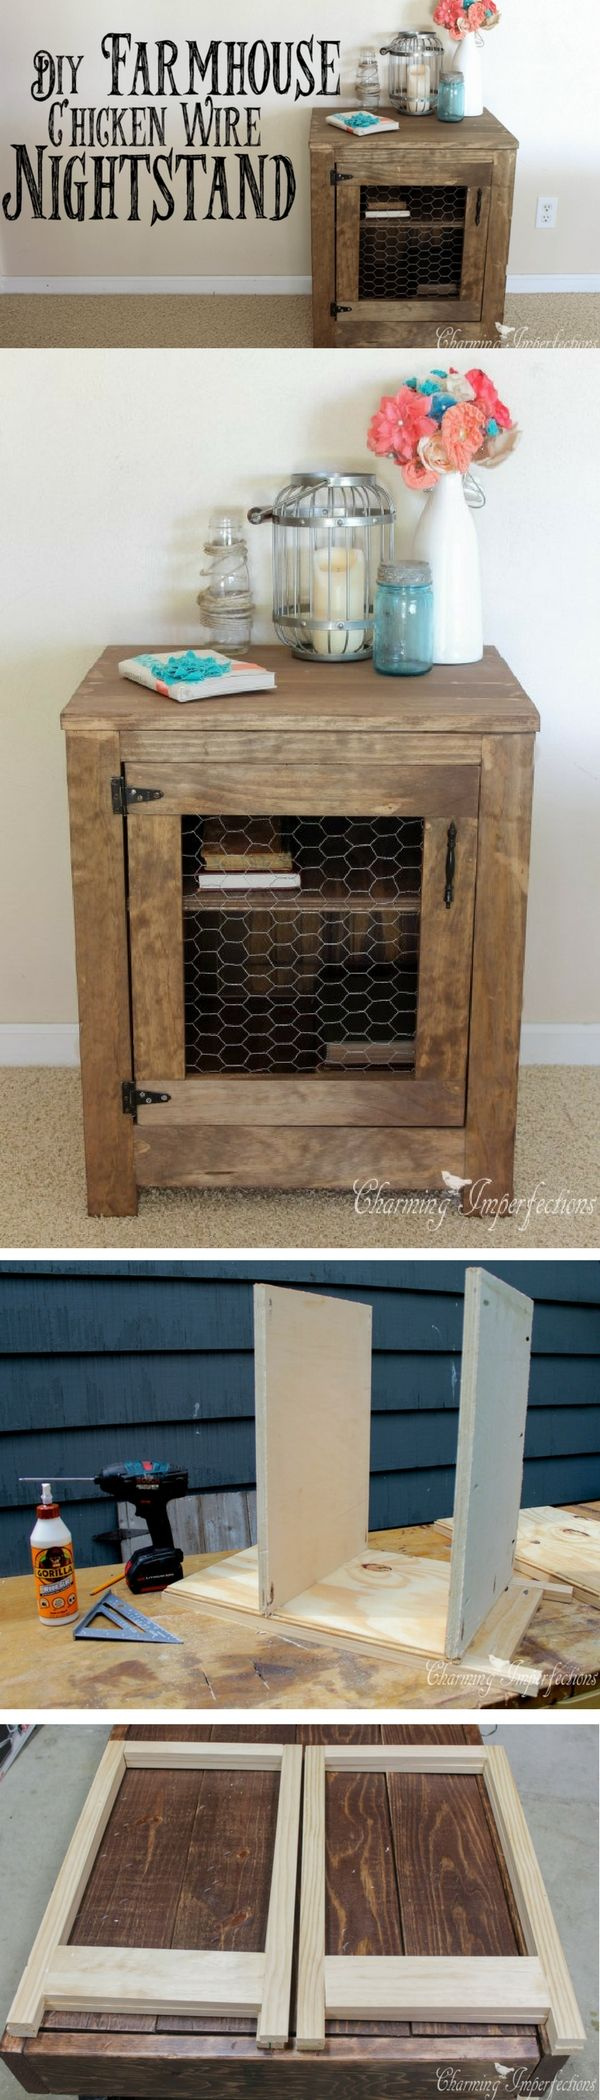 Check out how to build this DIY farmhouse nightstand @istandarddesign